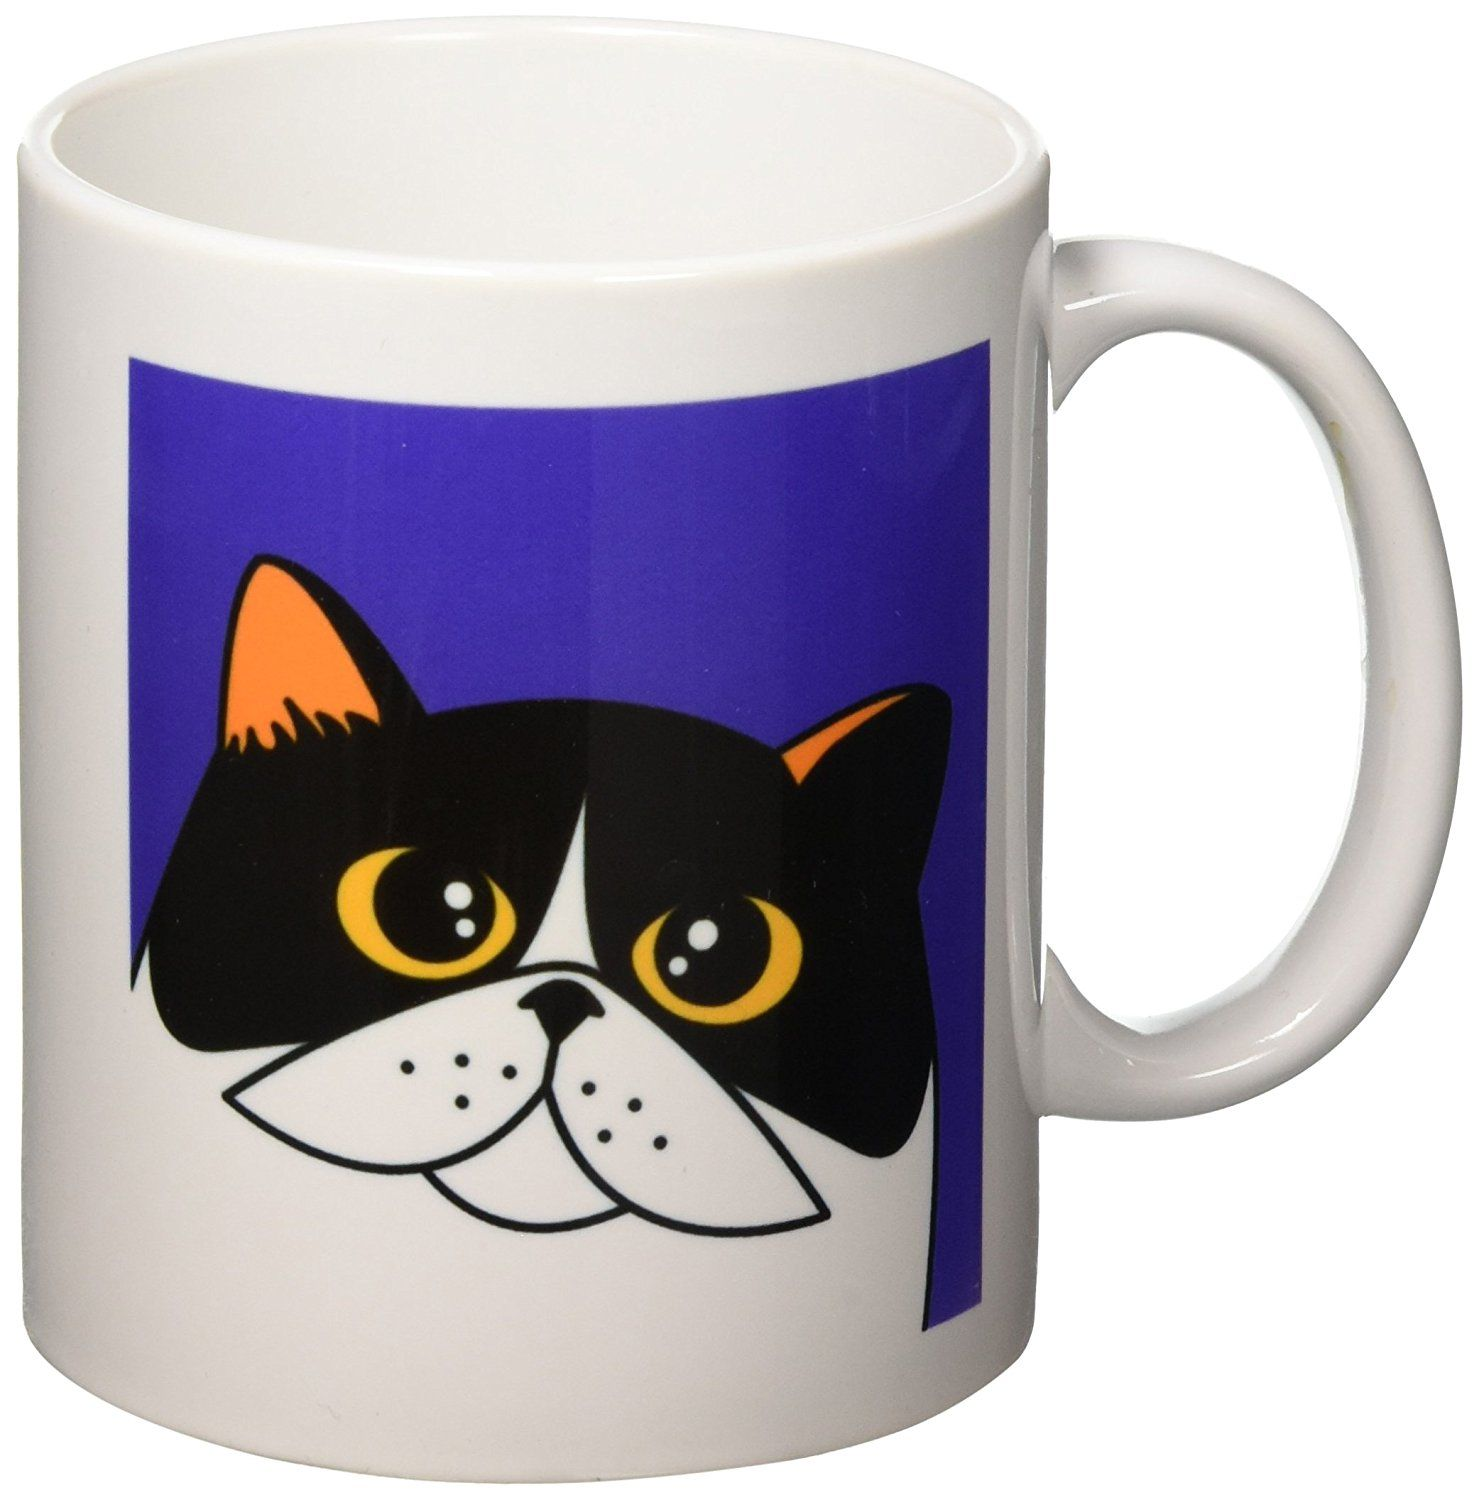 3drose The Curious Cat Calico With Orange Eyes Purple Mug 11 Ounce Additional Details At The Pin Image Click It Cat Mug Curious Cat Cat Mug Mugs